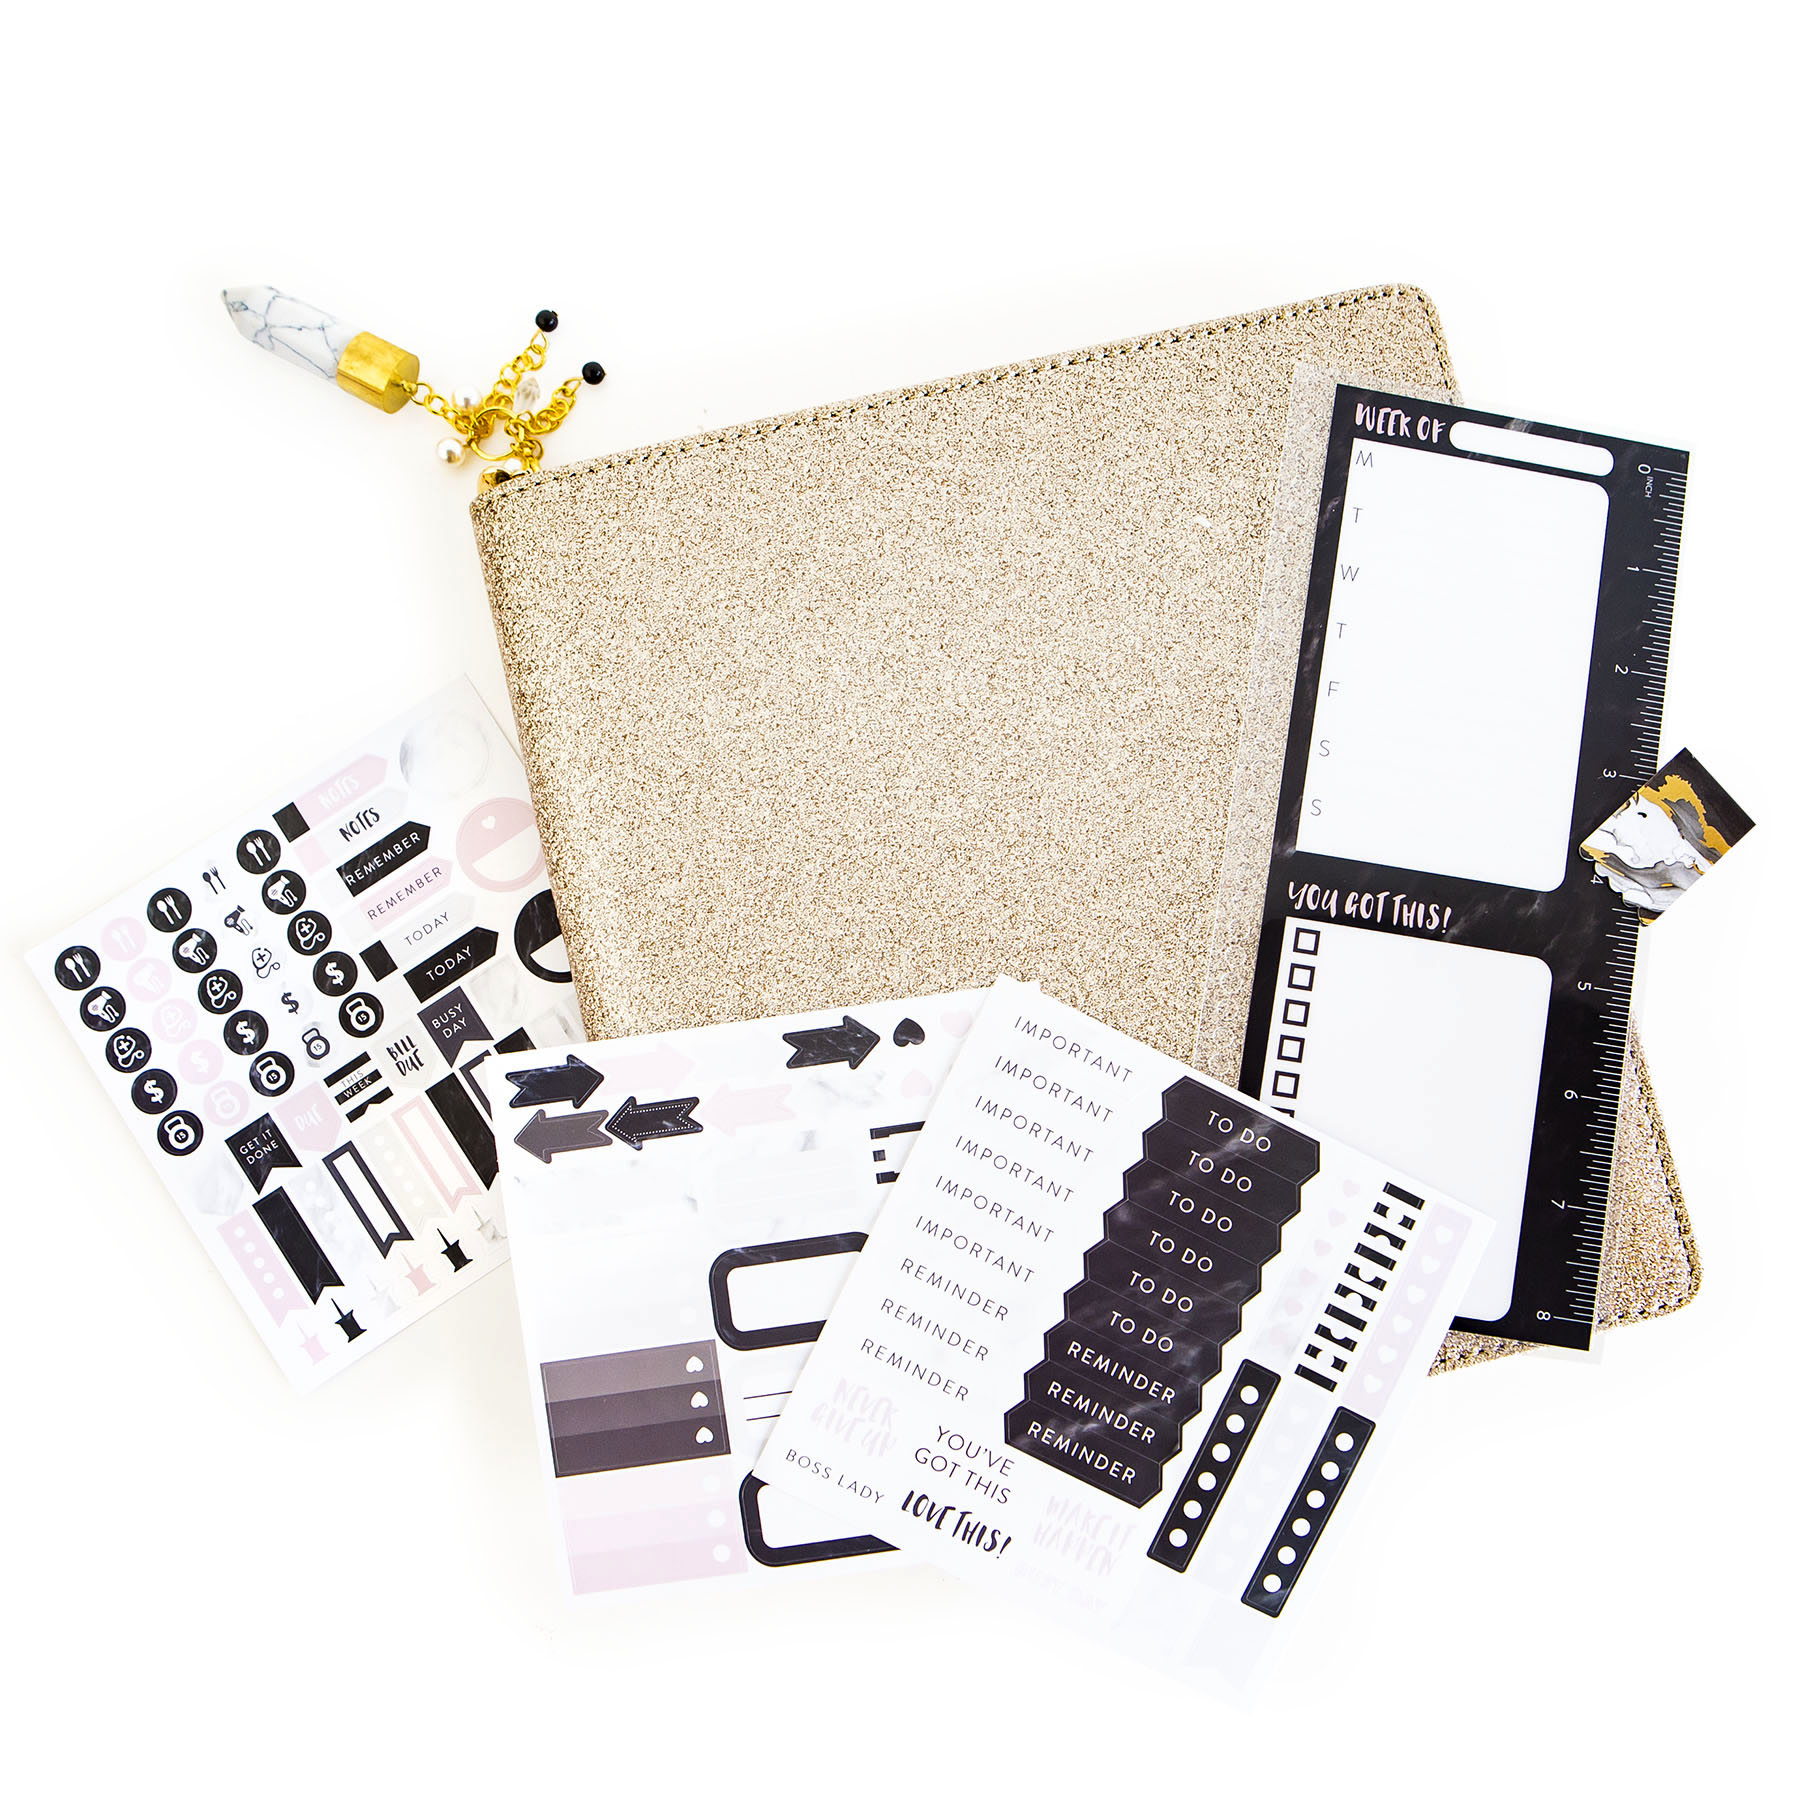 creative year gold accessory kit by